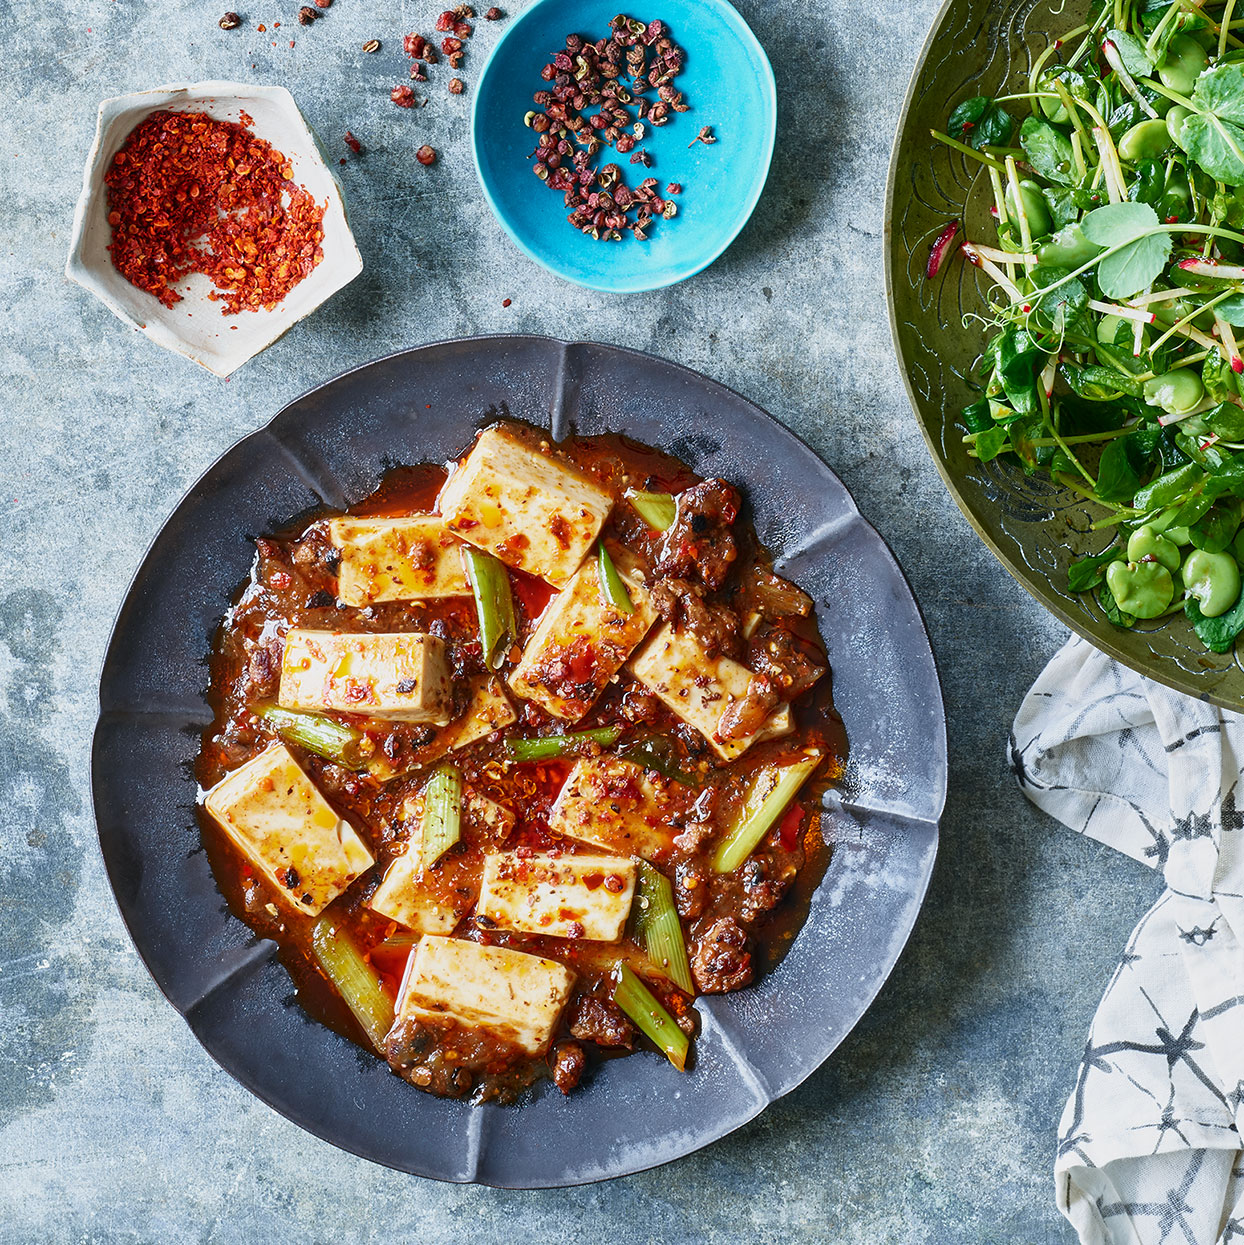 Mapo tofu is extremely popular both in and outside of China, perhaps because it was meant to be adaptable. The type and amount of both tofu and meat is often varied and even the spicy sauce can be tuned to the desired level of heat. Source: EatingWell Magazine, May 2020